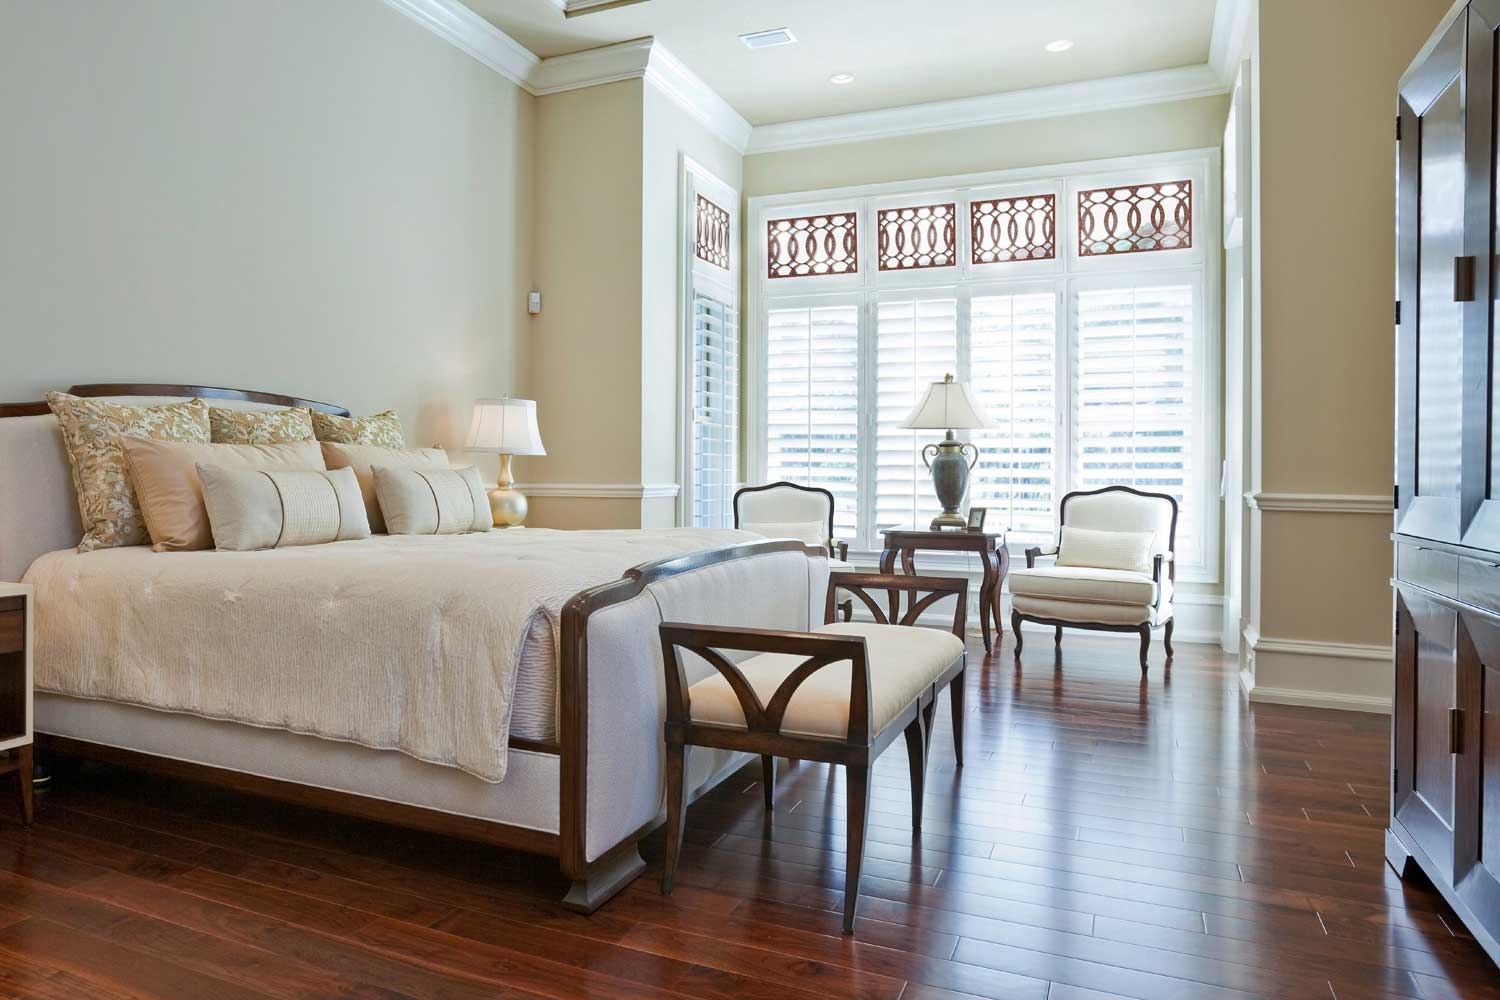 bedroom with cot, chairs and window with shutters